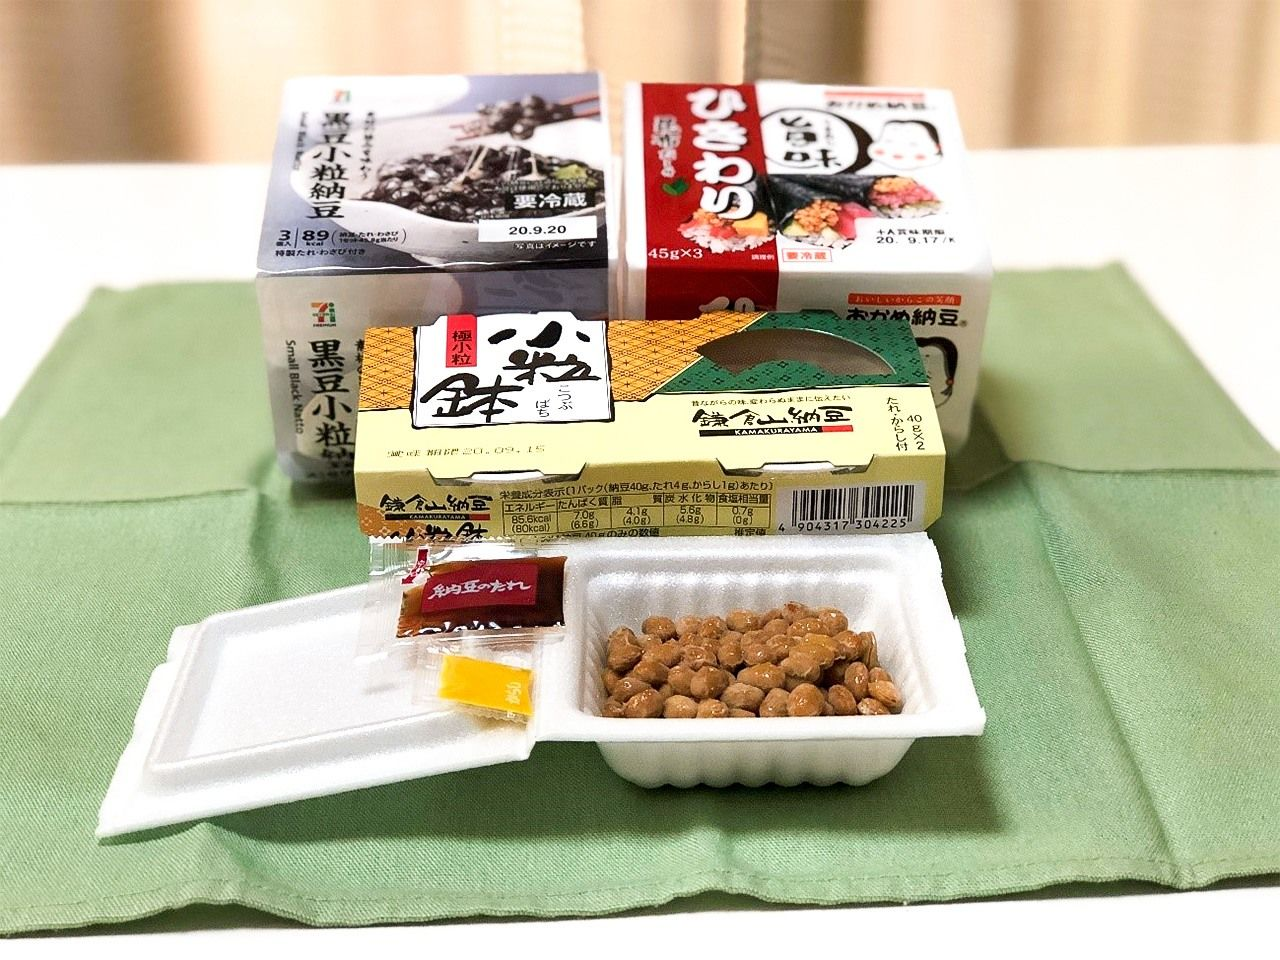 Types of nattō packaging includes polystyrene trays and paper cups.